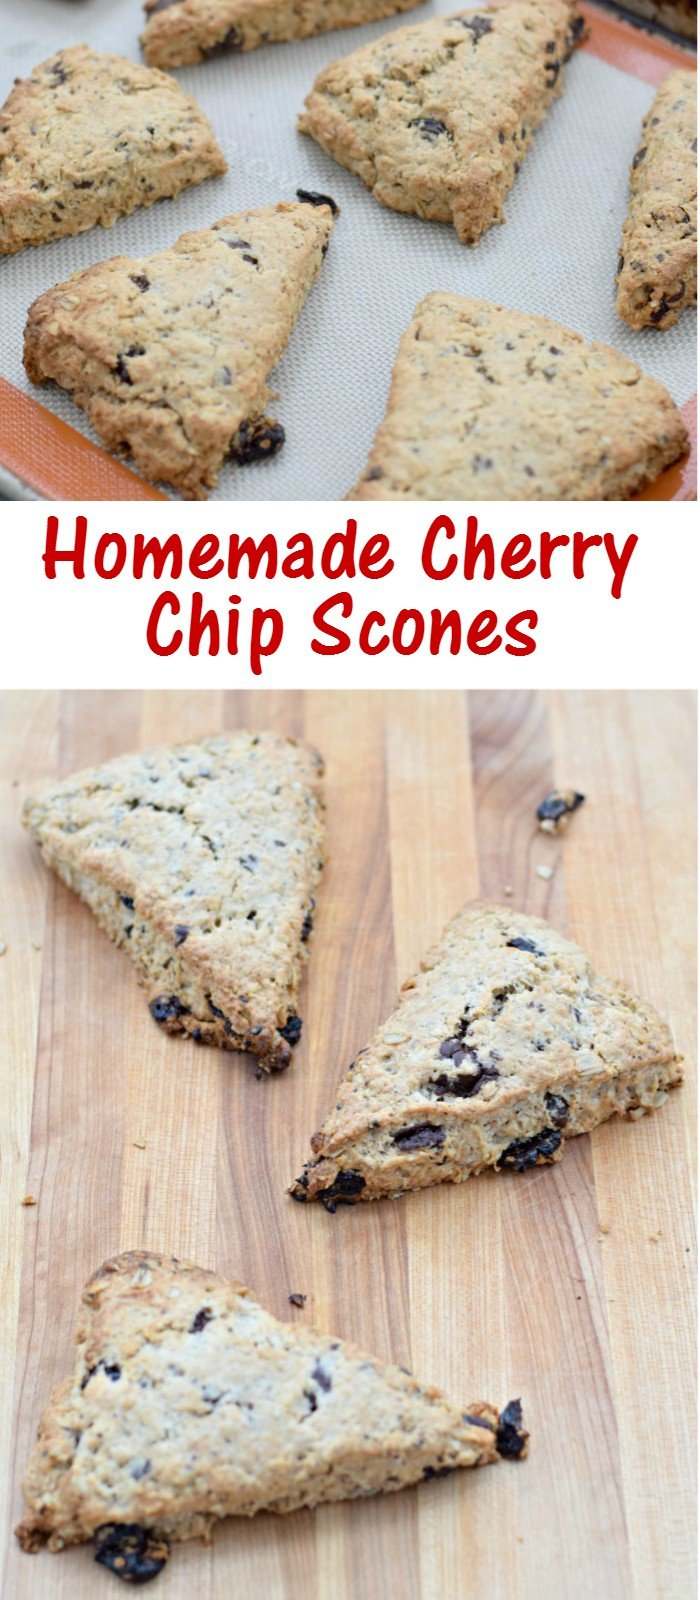 Food processor cherry chip scones recipe honest and truly delicious and easy cherry chip scones recipes make them in your food processor this forumfinder Image collections